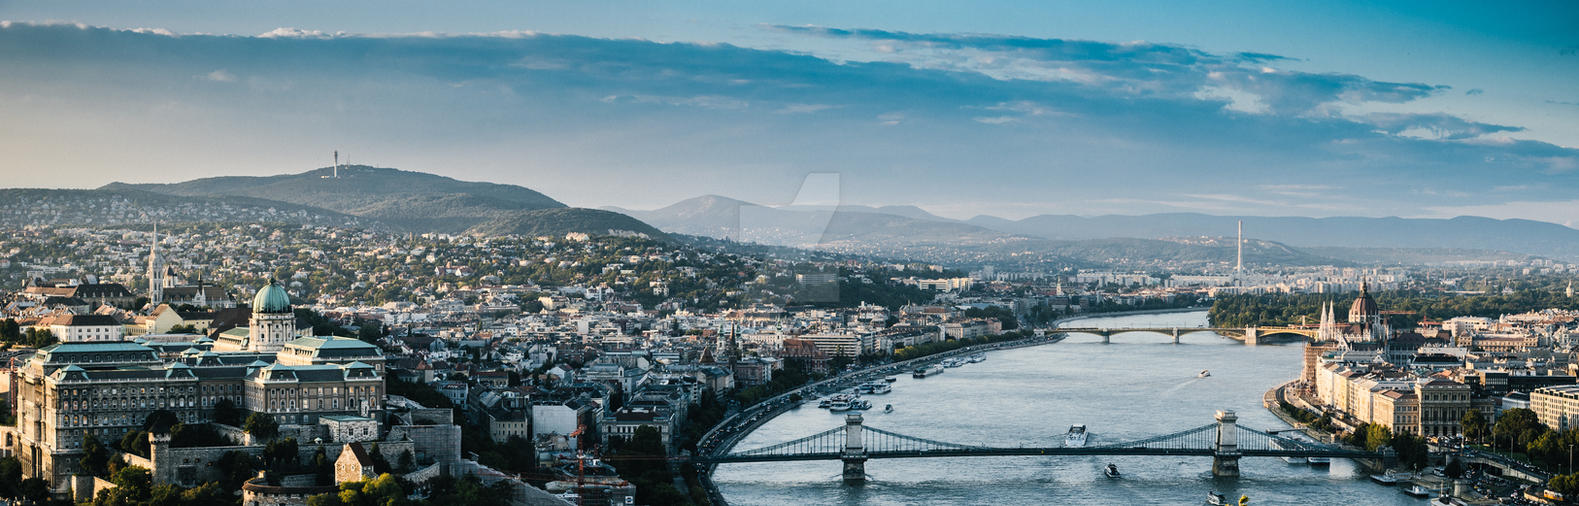 Budapest panorama by airsteve